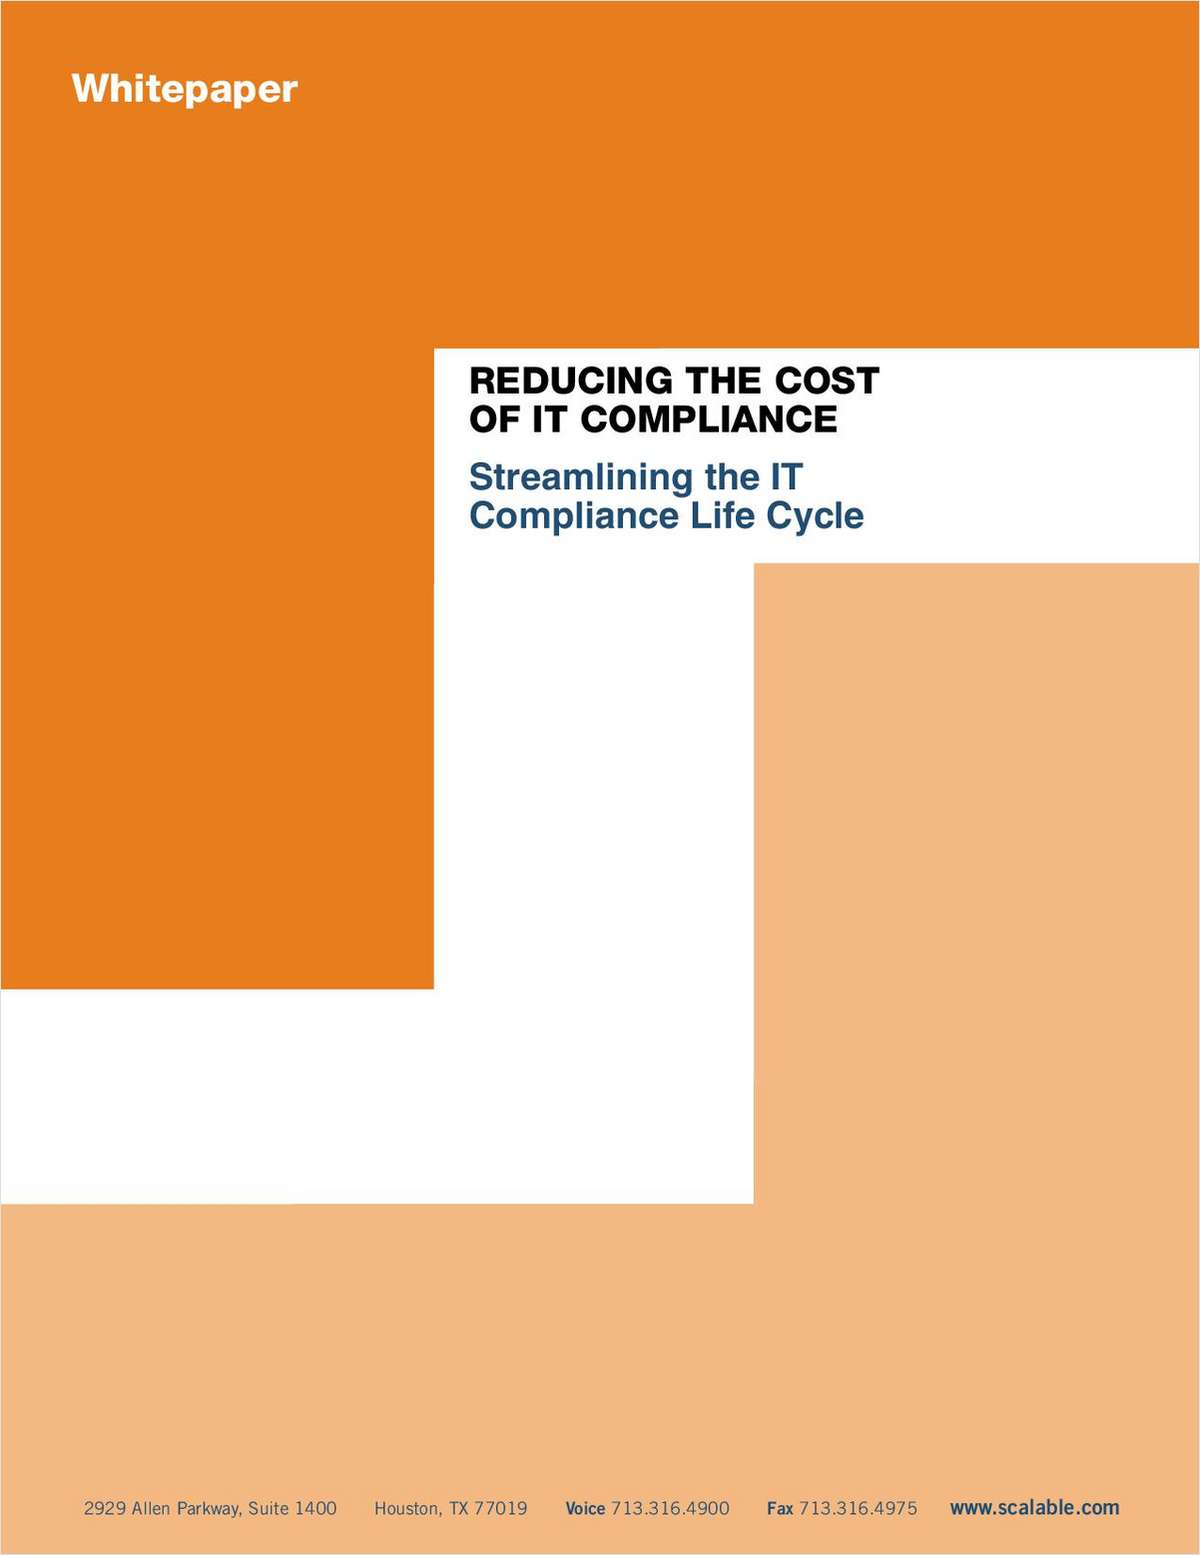 Reducing the Cost of IT Compliance: Streamlining the IT Compliance Life Cycle